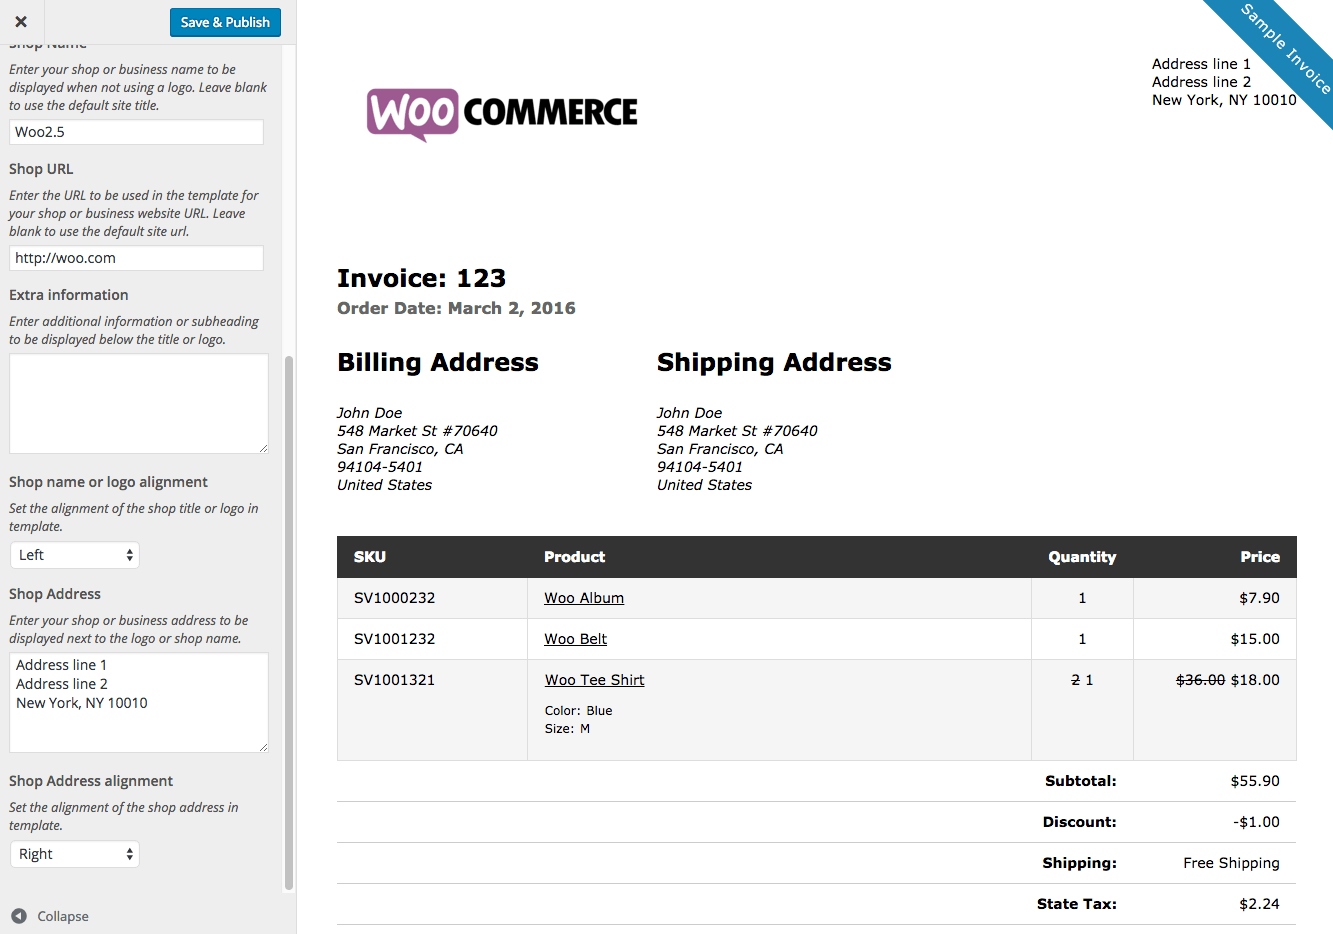 Pigbrotherus  Pretty Woocommerce Print Invoices Amp Packing Lists  Woocommerce Docs With Handsome Woocommerce Print Invoices  Packing Lists Customizer With Alluring Subrogation Receipt Also Business Receipts App In Addition How Long Do I Need To Keep Receipts And Chilli Receipt As Well As Income Tax Receipt Additionally Scansnap Receipts From Docswoocommercecom With Pigbrotherus  Handsome Woocommerce Print Invoices Amp Packing Lists  Woocommerce Docs With Alluring Woocommerce Print Invoices  Packing Lists Customizer And Pretty Subrogation Receipt Also Business Receipts App In Addition How Long Do I Need To Keep Receipts From Docswoocommercecom